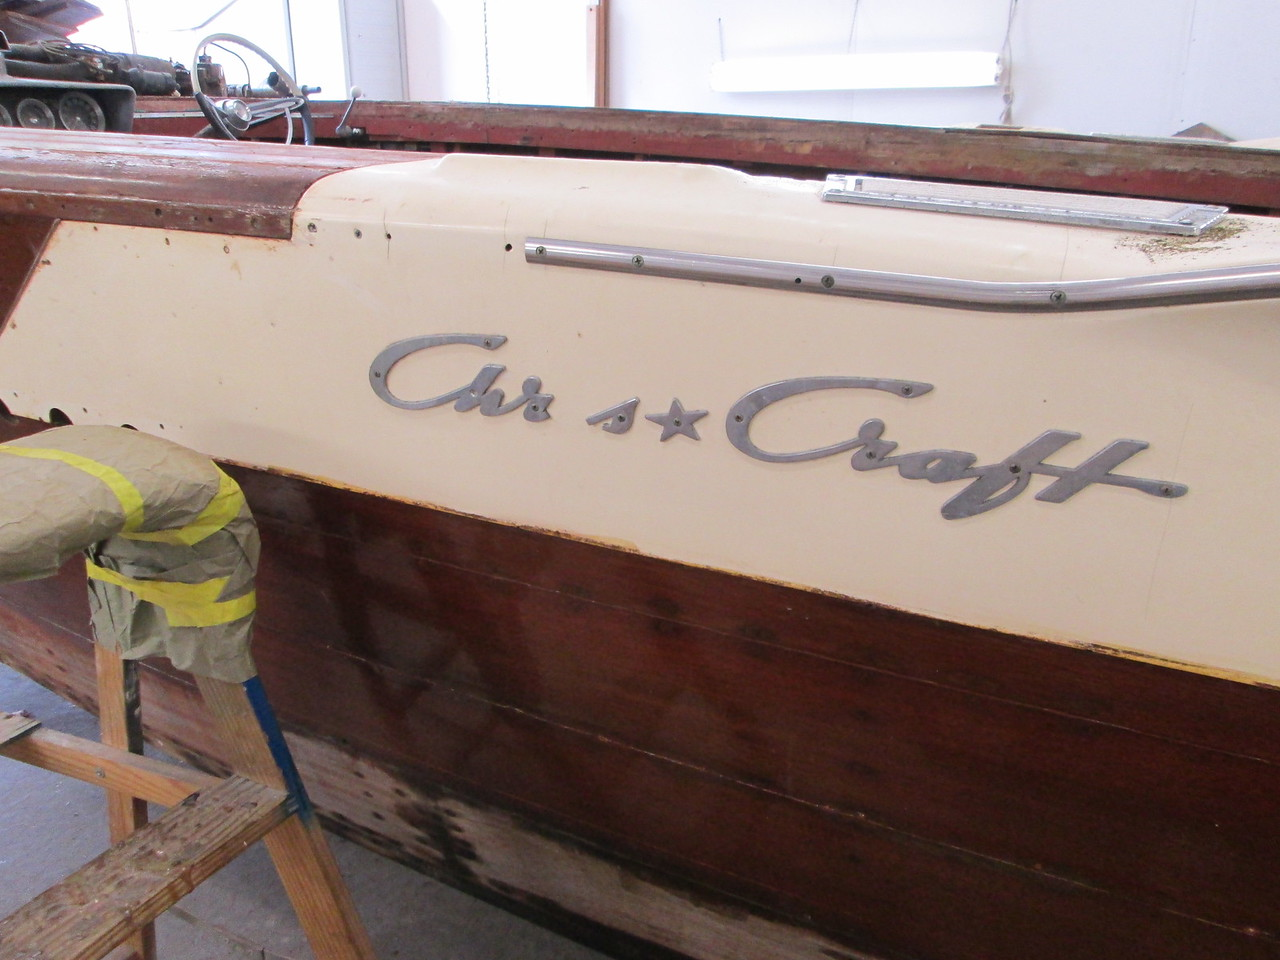 Damaged Chris Craft logo.